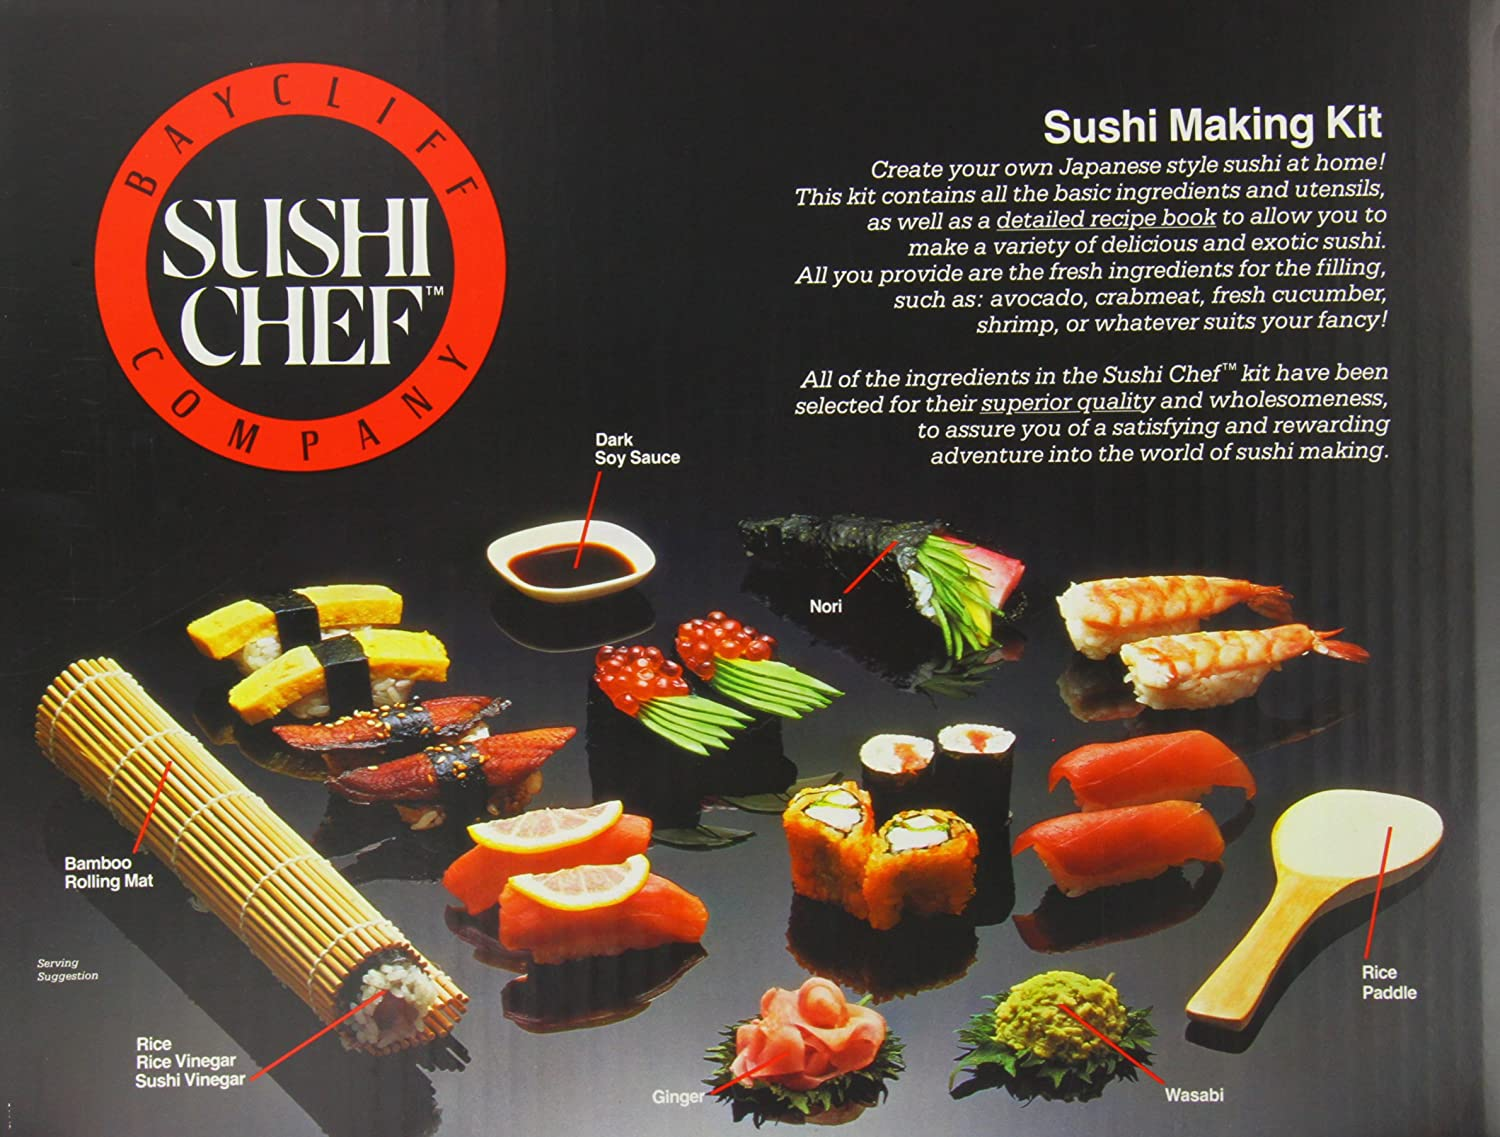 Sushi Dinner Party Ideas Part - 37: Amazon.com : Sushi Chef Sushi Making Kit : Gourmet Seafood Gifts : Grocery  U0026 Gourmet Food